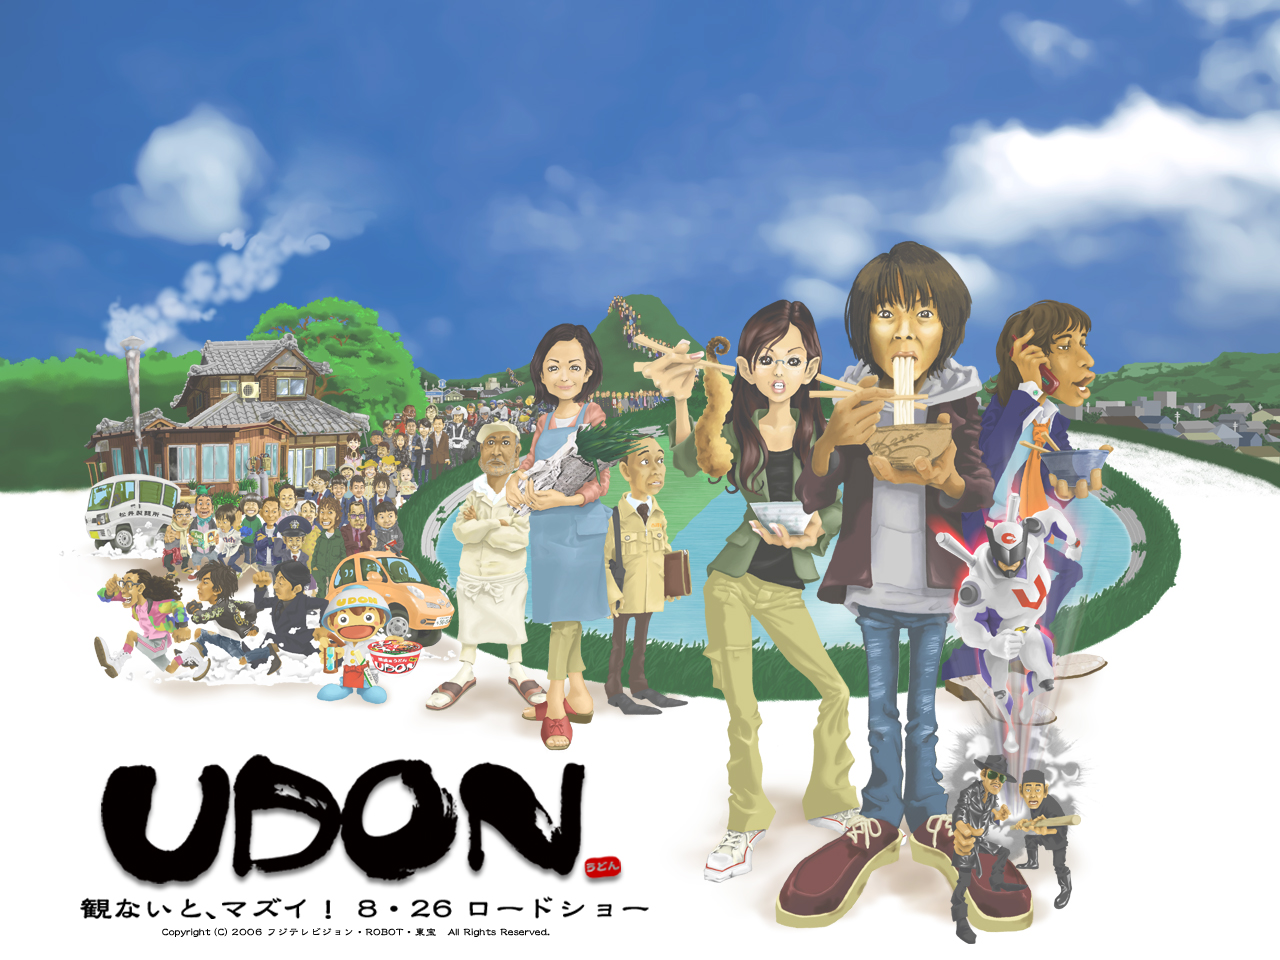 A poster of the Japanese Food Movie Udon